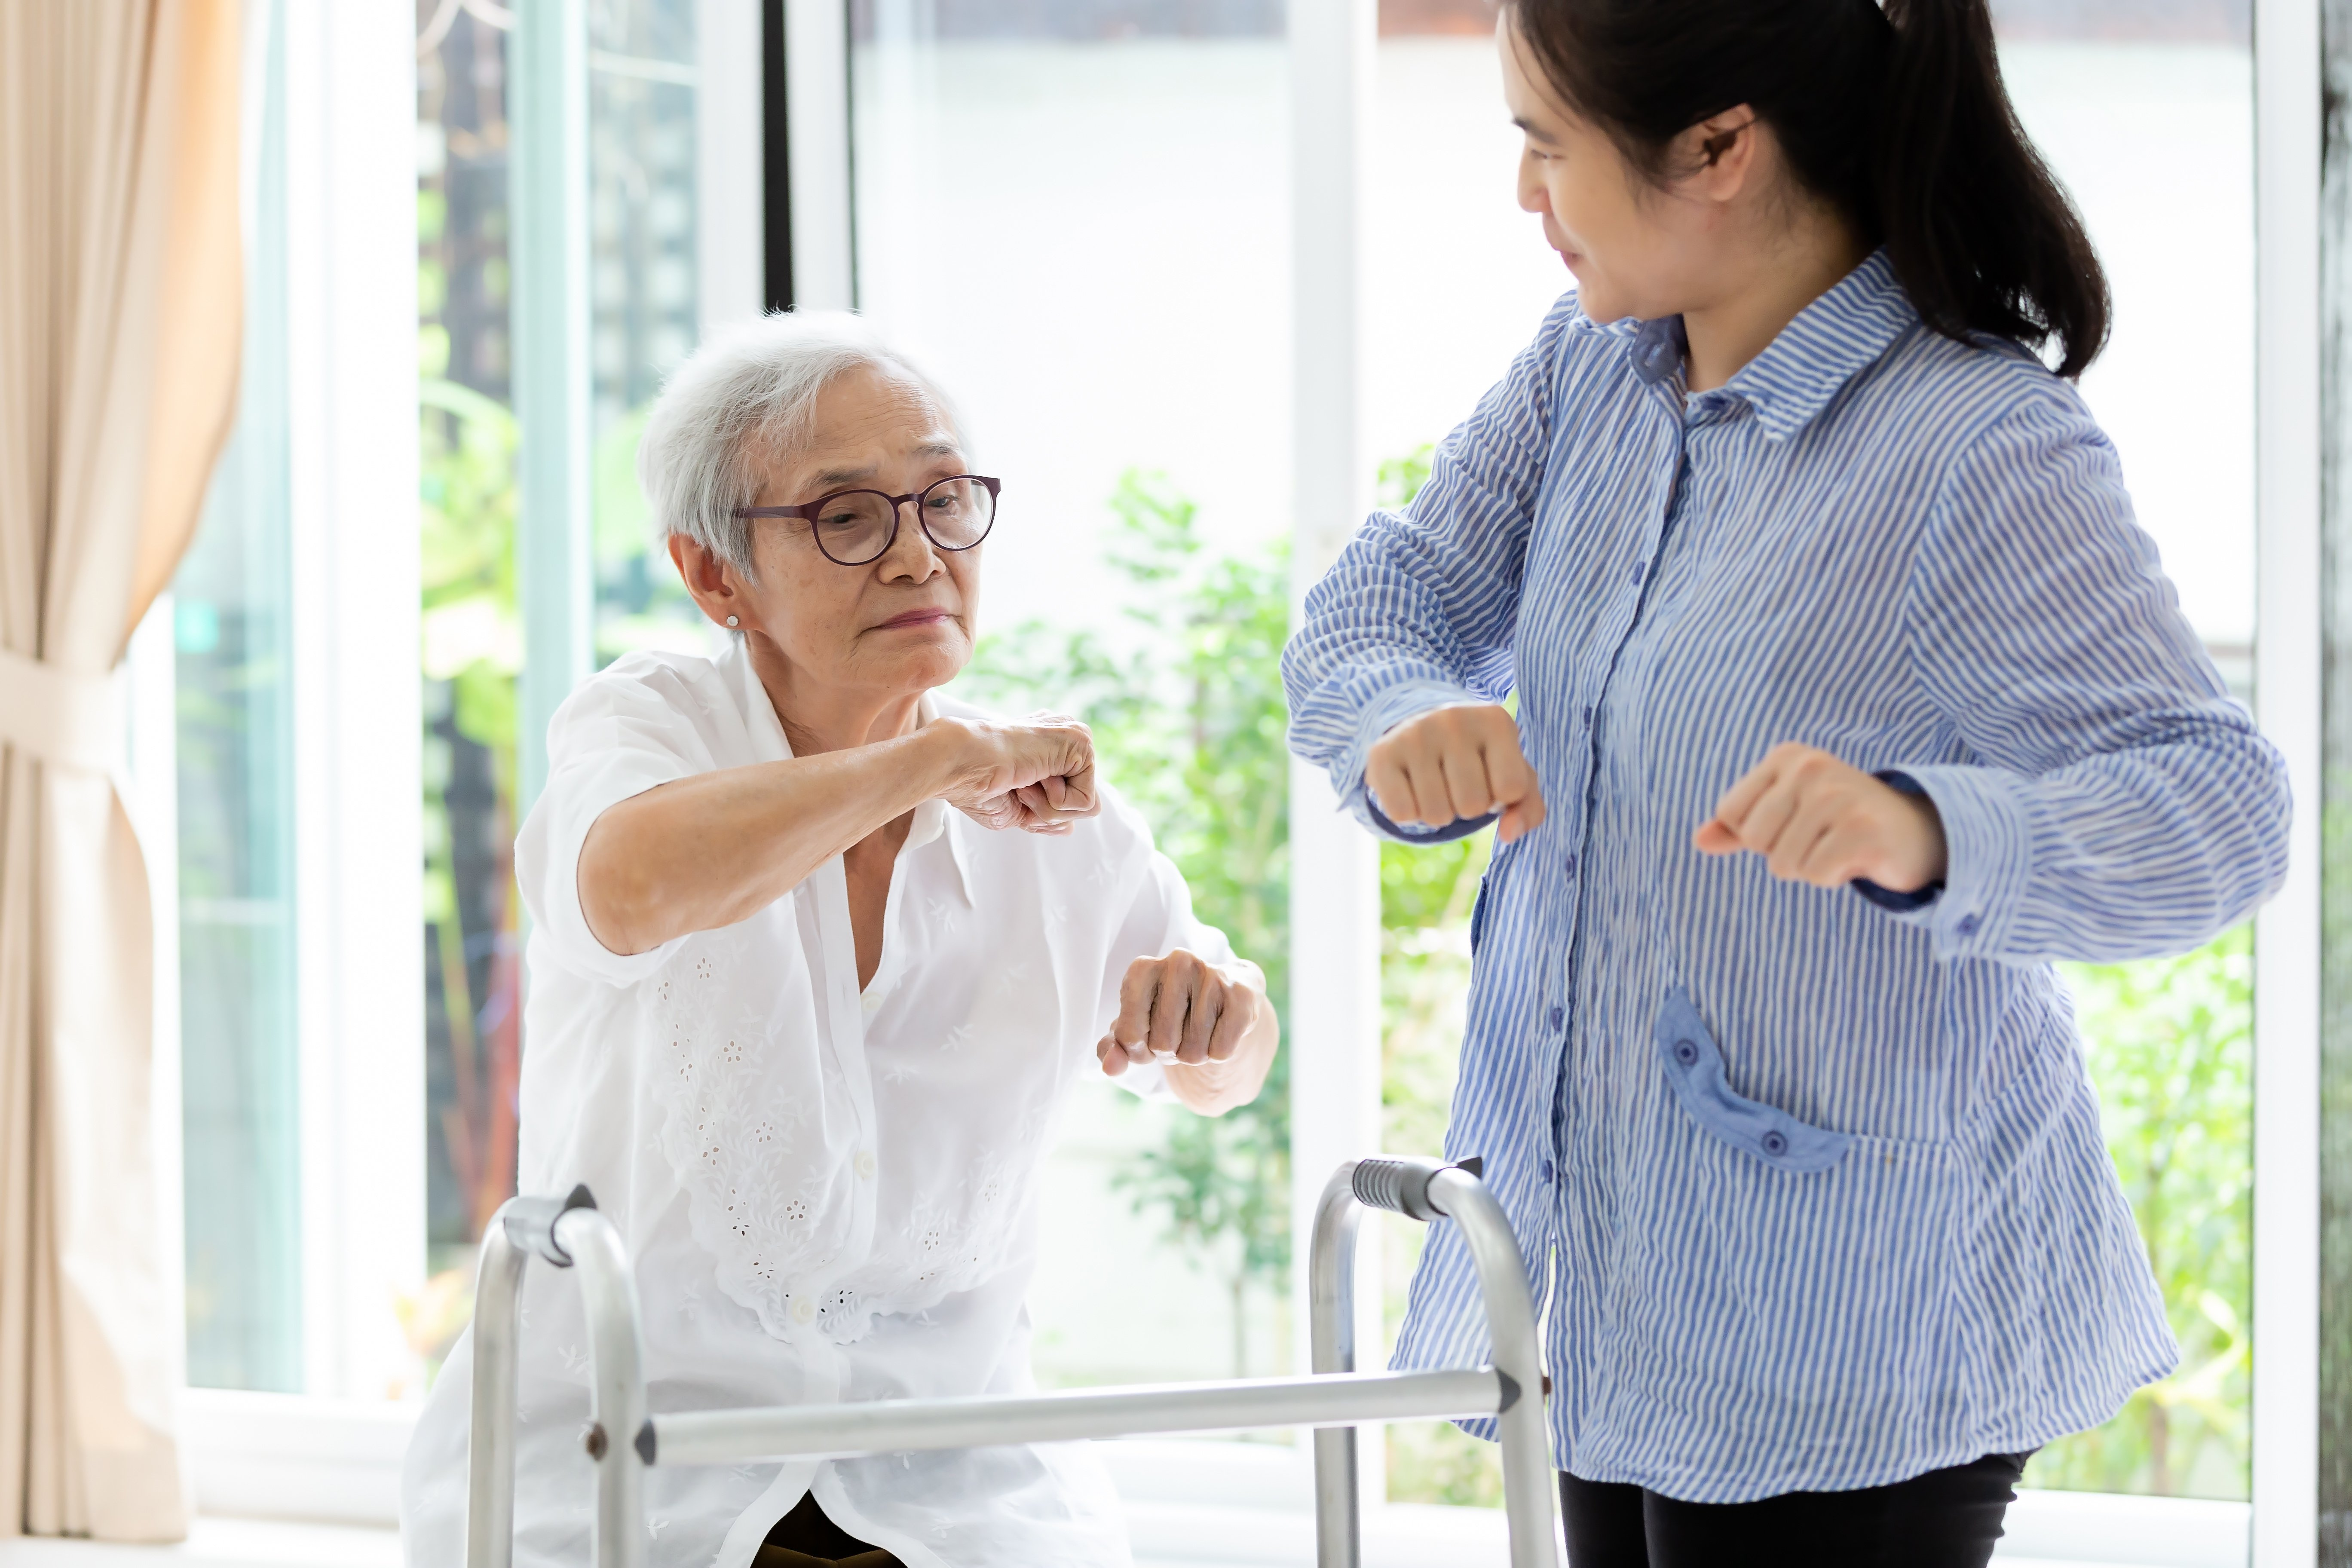 Neuromuscular Rehabilitation Therapy Techniques: What to Expect